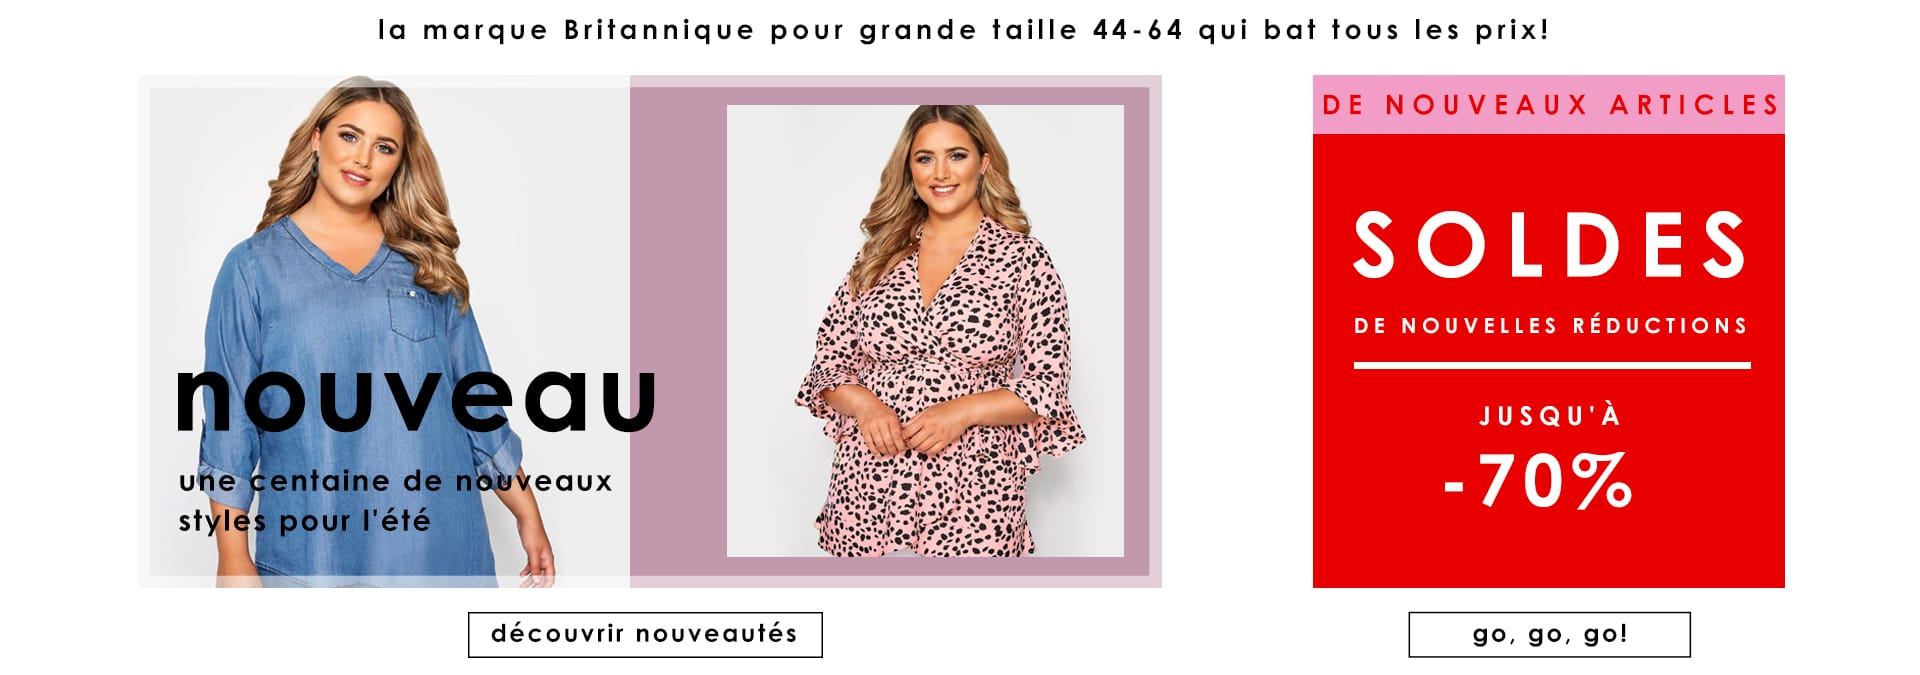 Vêtements Taille Ronde Yours Clothing Grande FemmeMode DIWHYE29